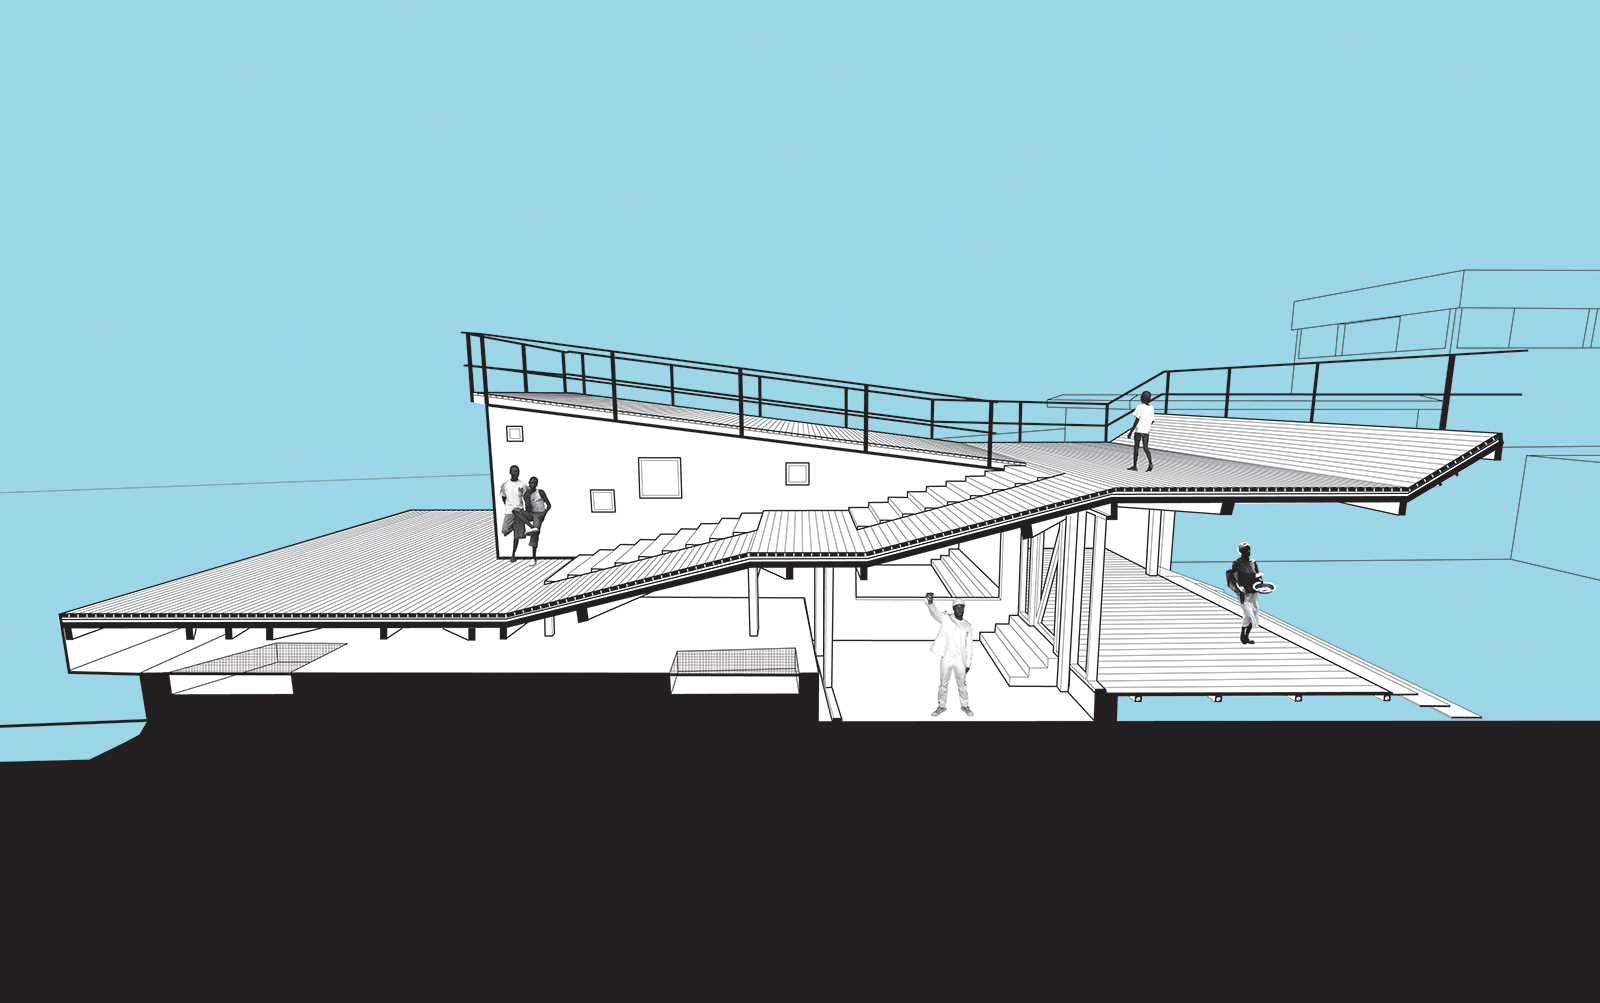 Section perspective showing the exterior public space above the private recording studios and radio center deck